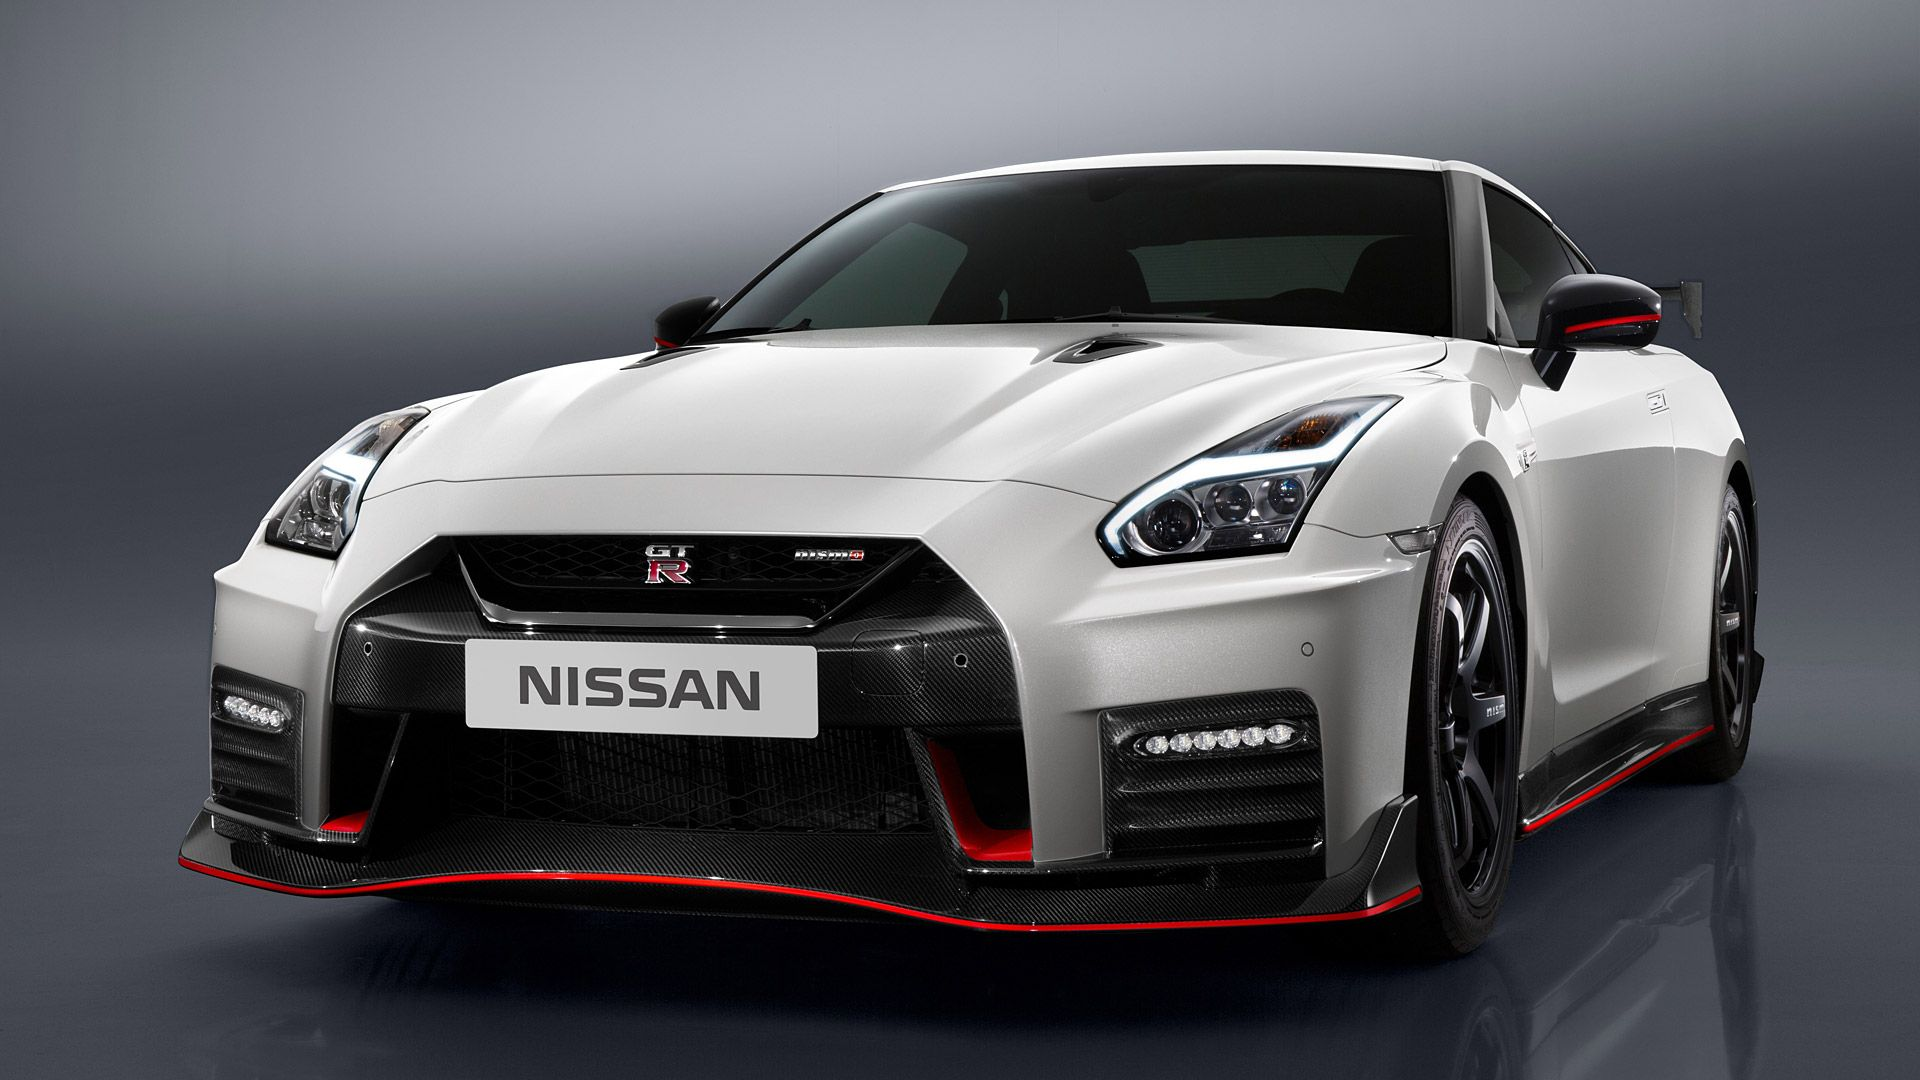 Nissan Gt R Nismo Wallpapers Top Free Nissan Gt R Nismo Backgrounds Wallpaperaccess